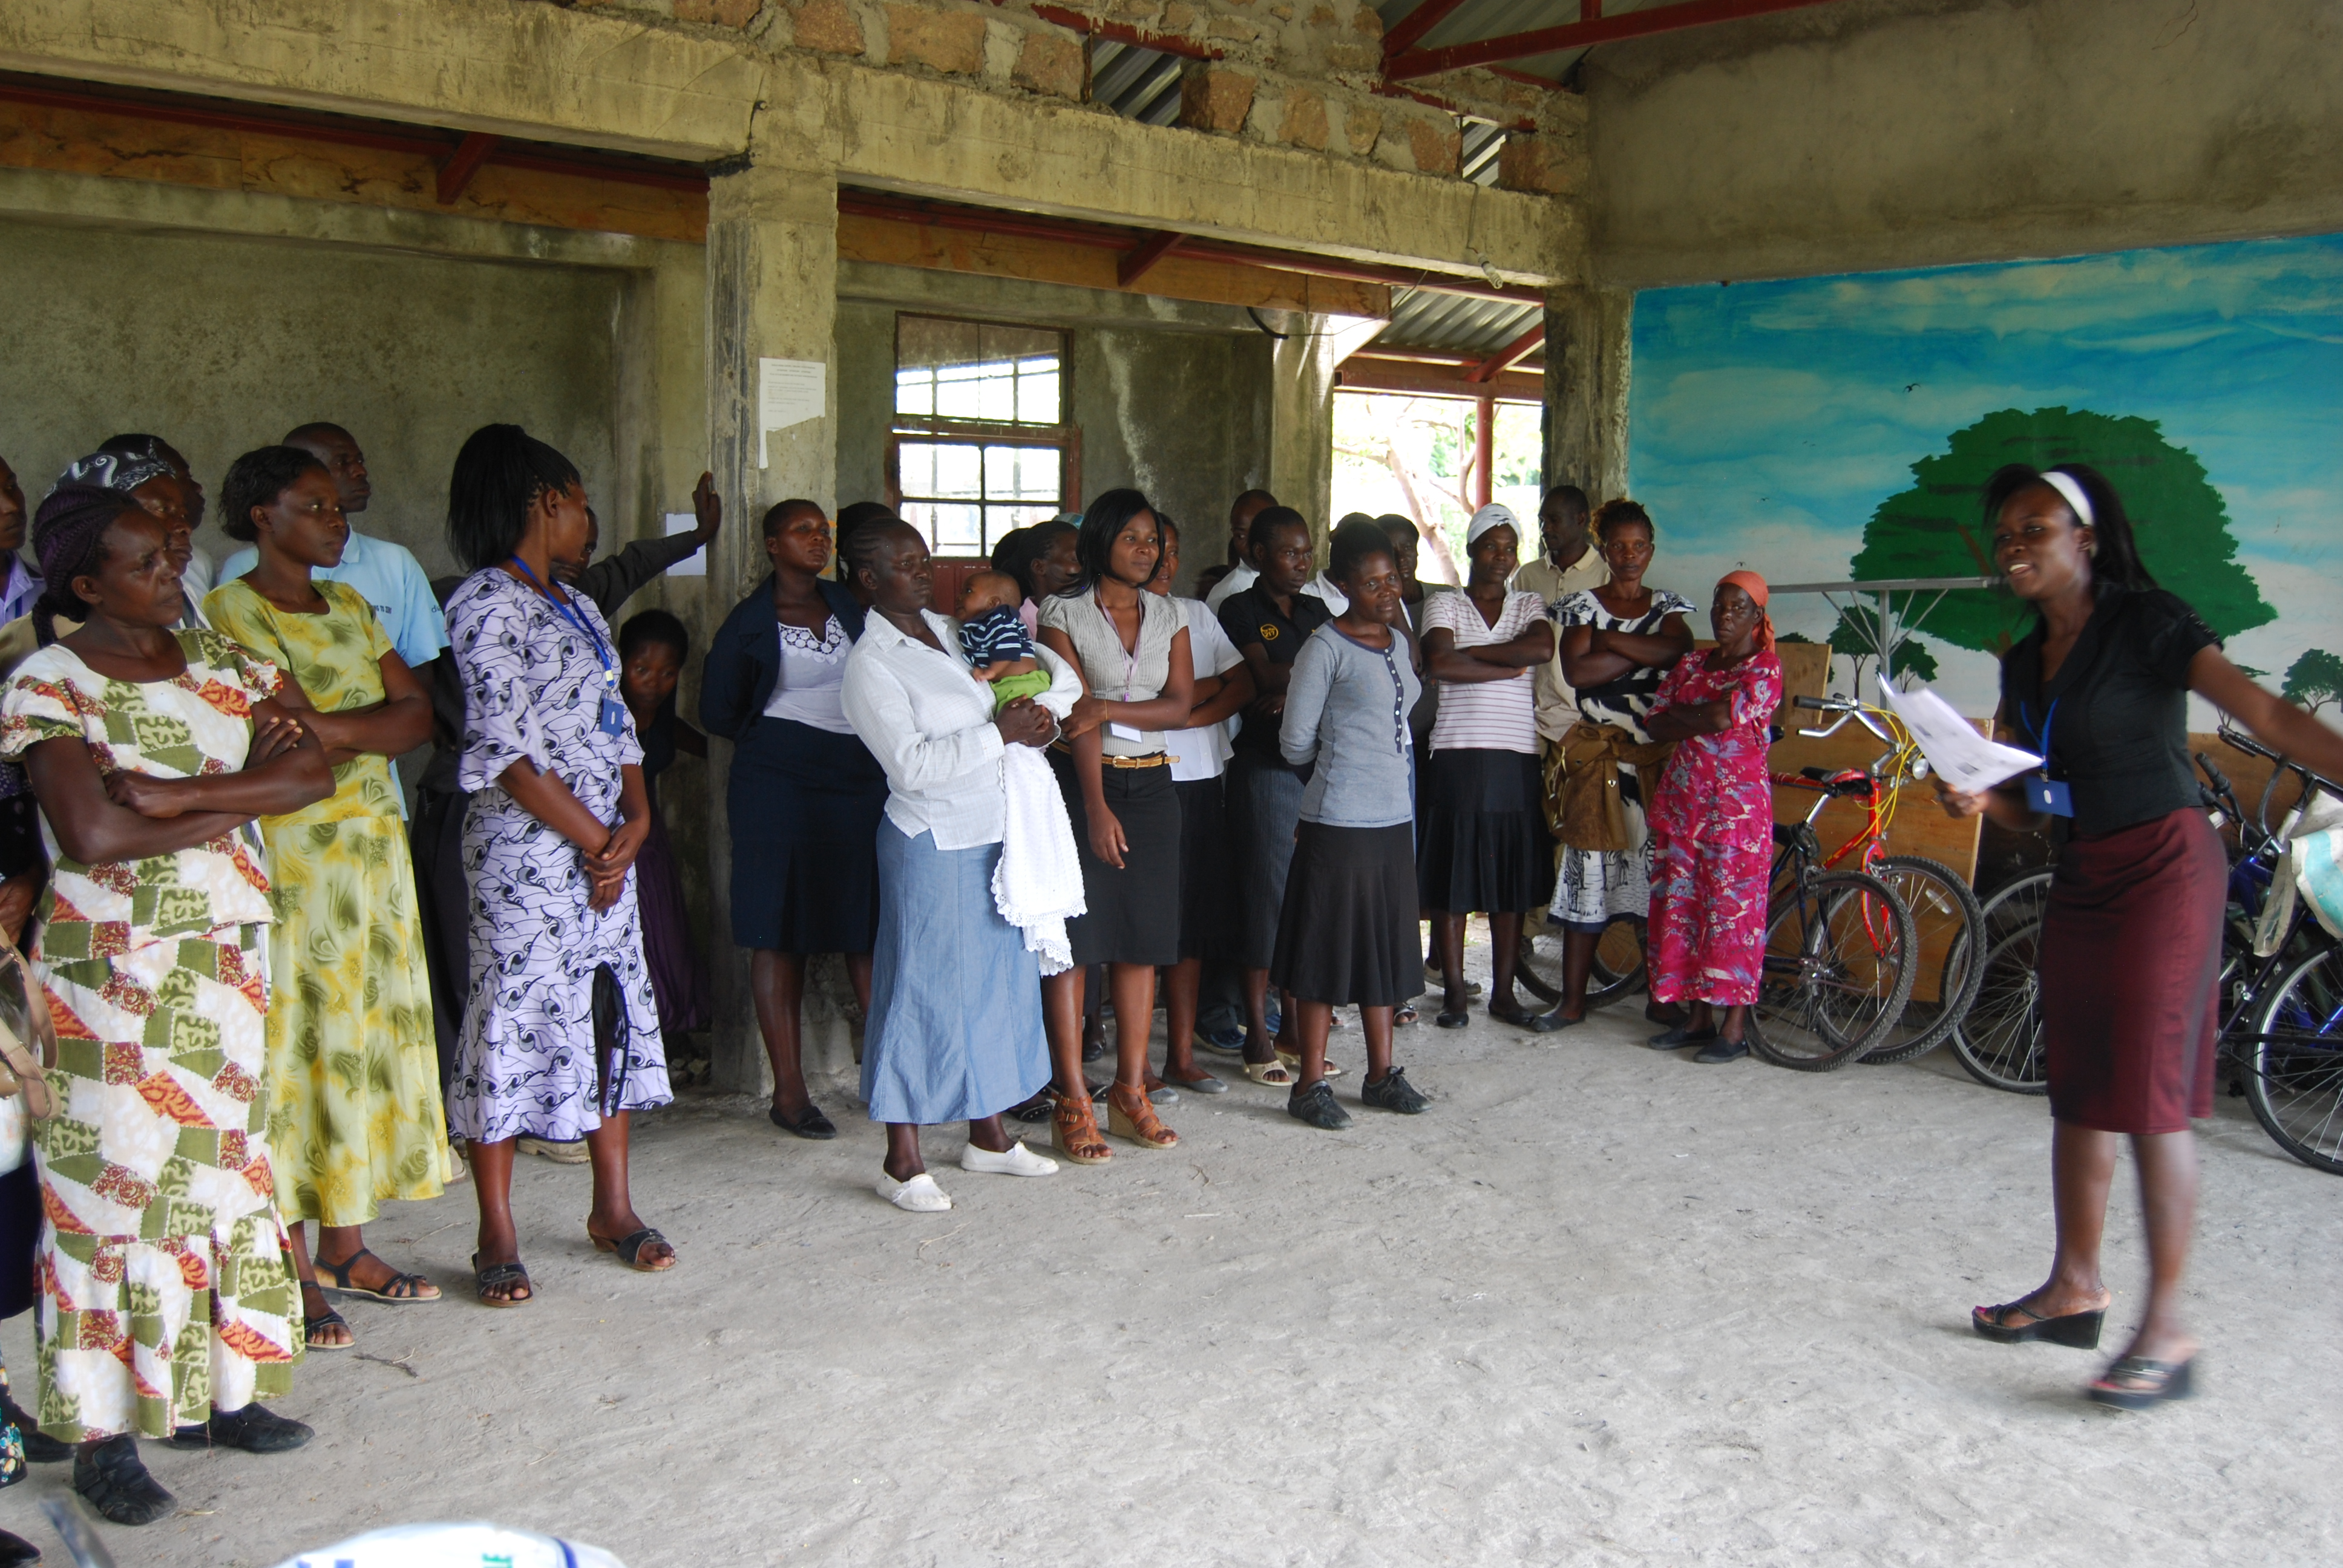 EK Nutrition Counselor Florida Otieno leads a group in a food security activity.